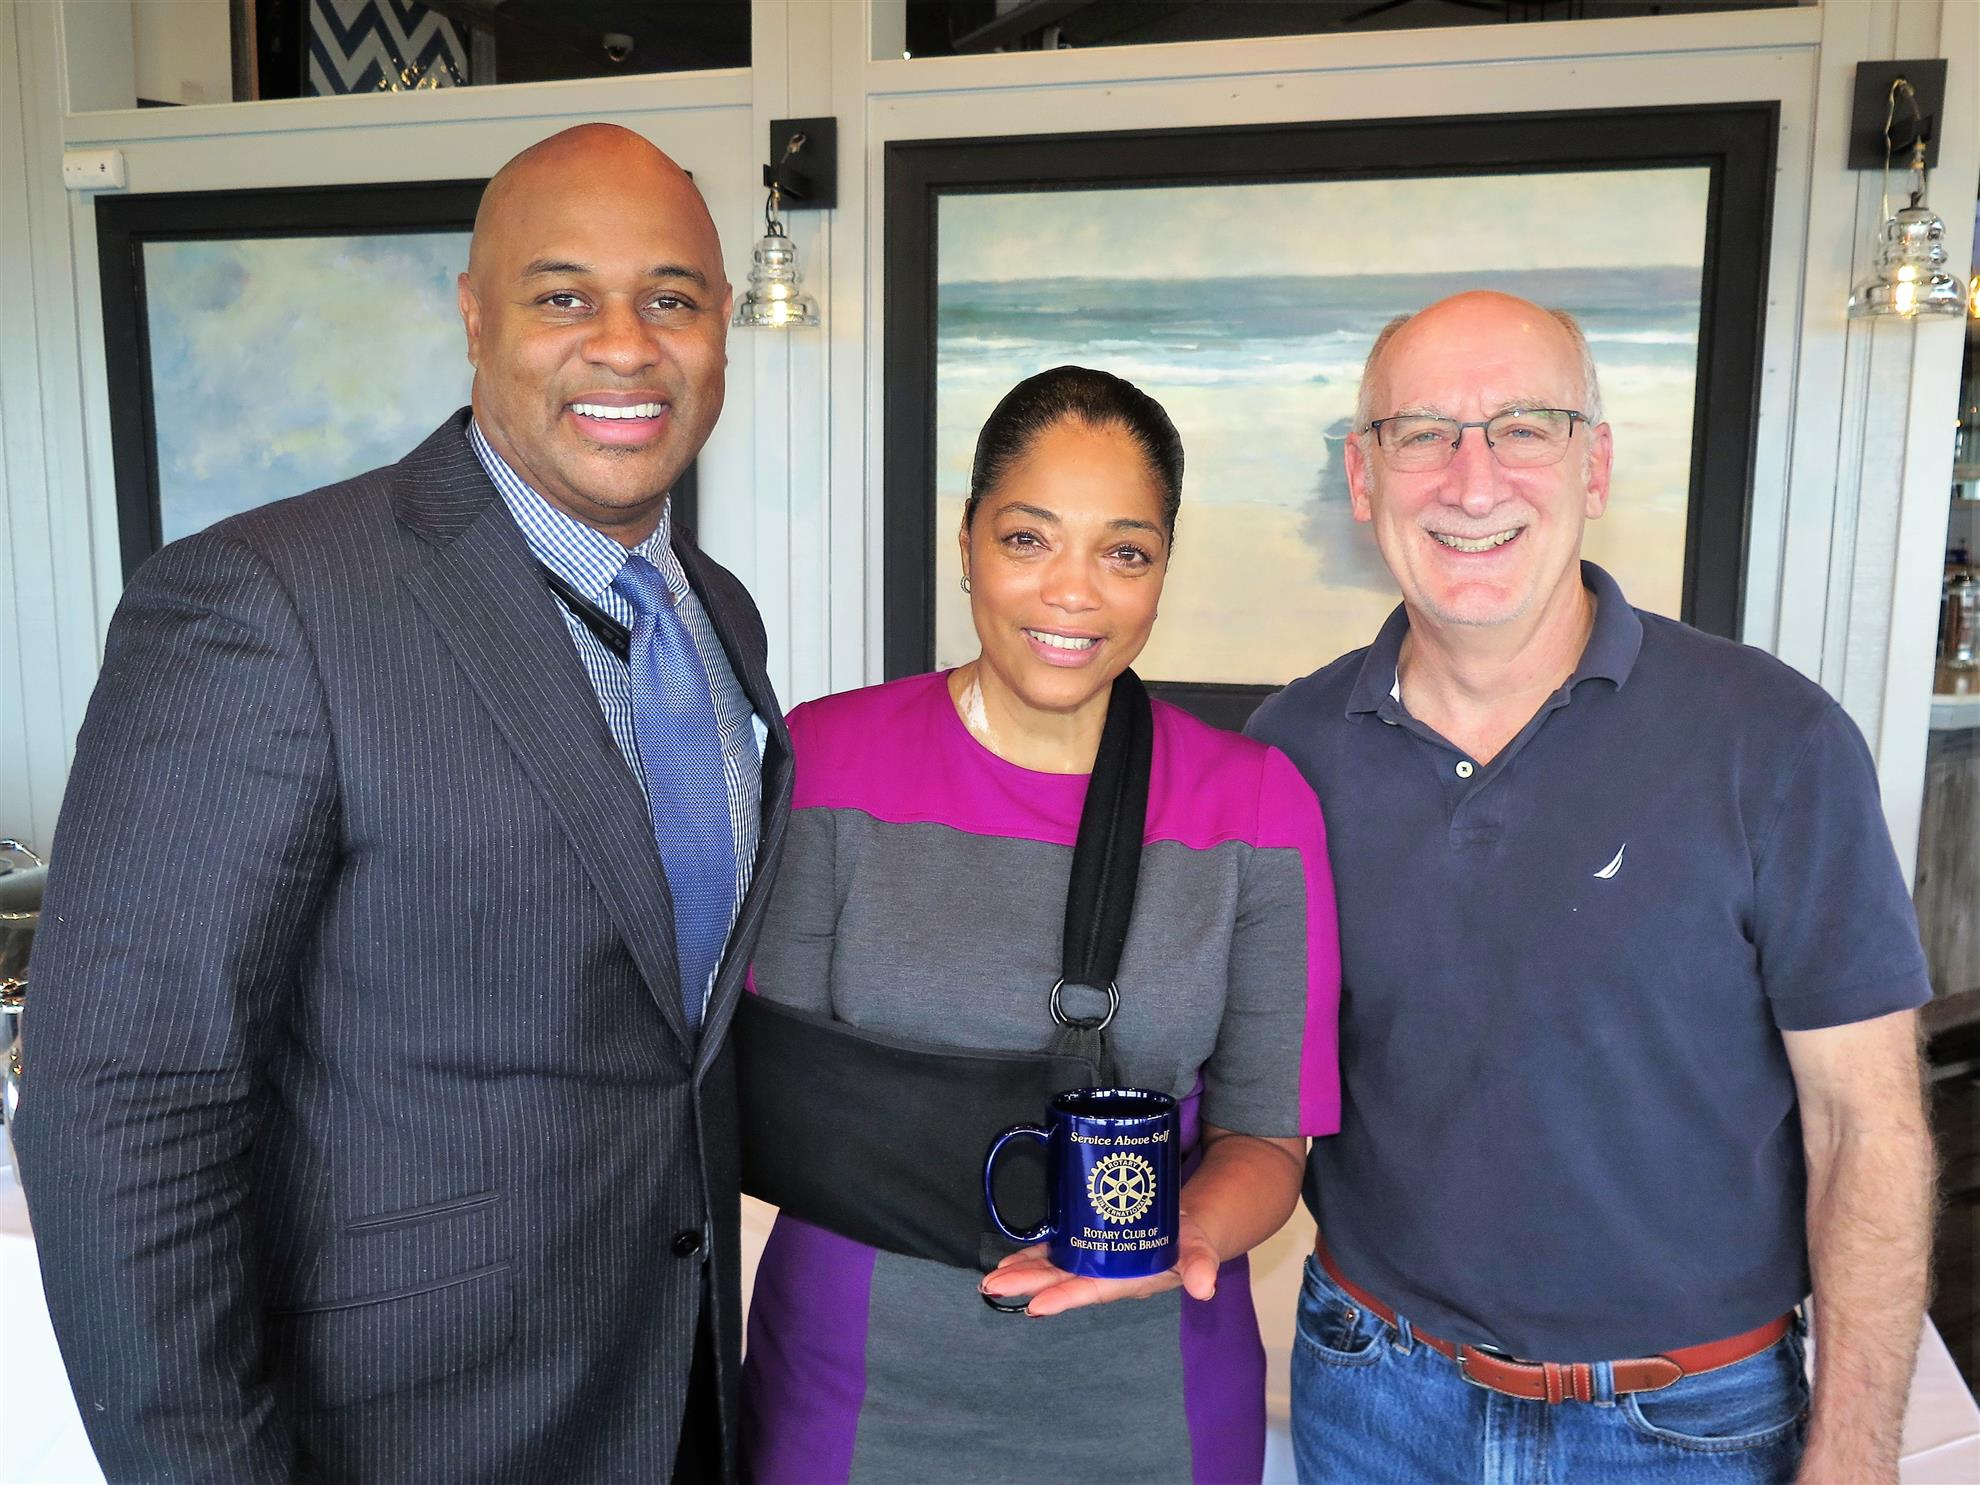 Stories | Rotary Club of Long Branch